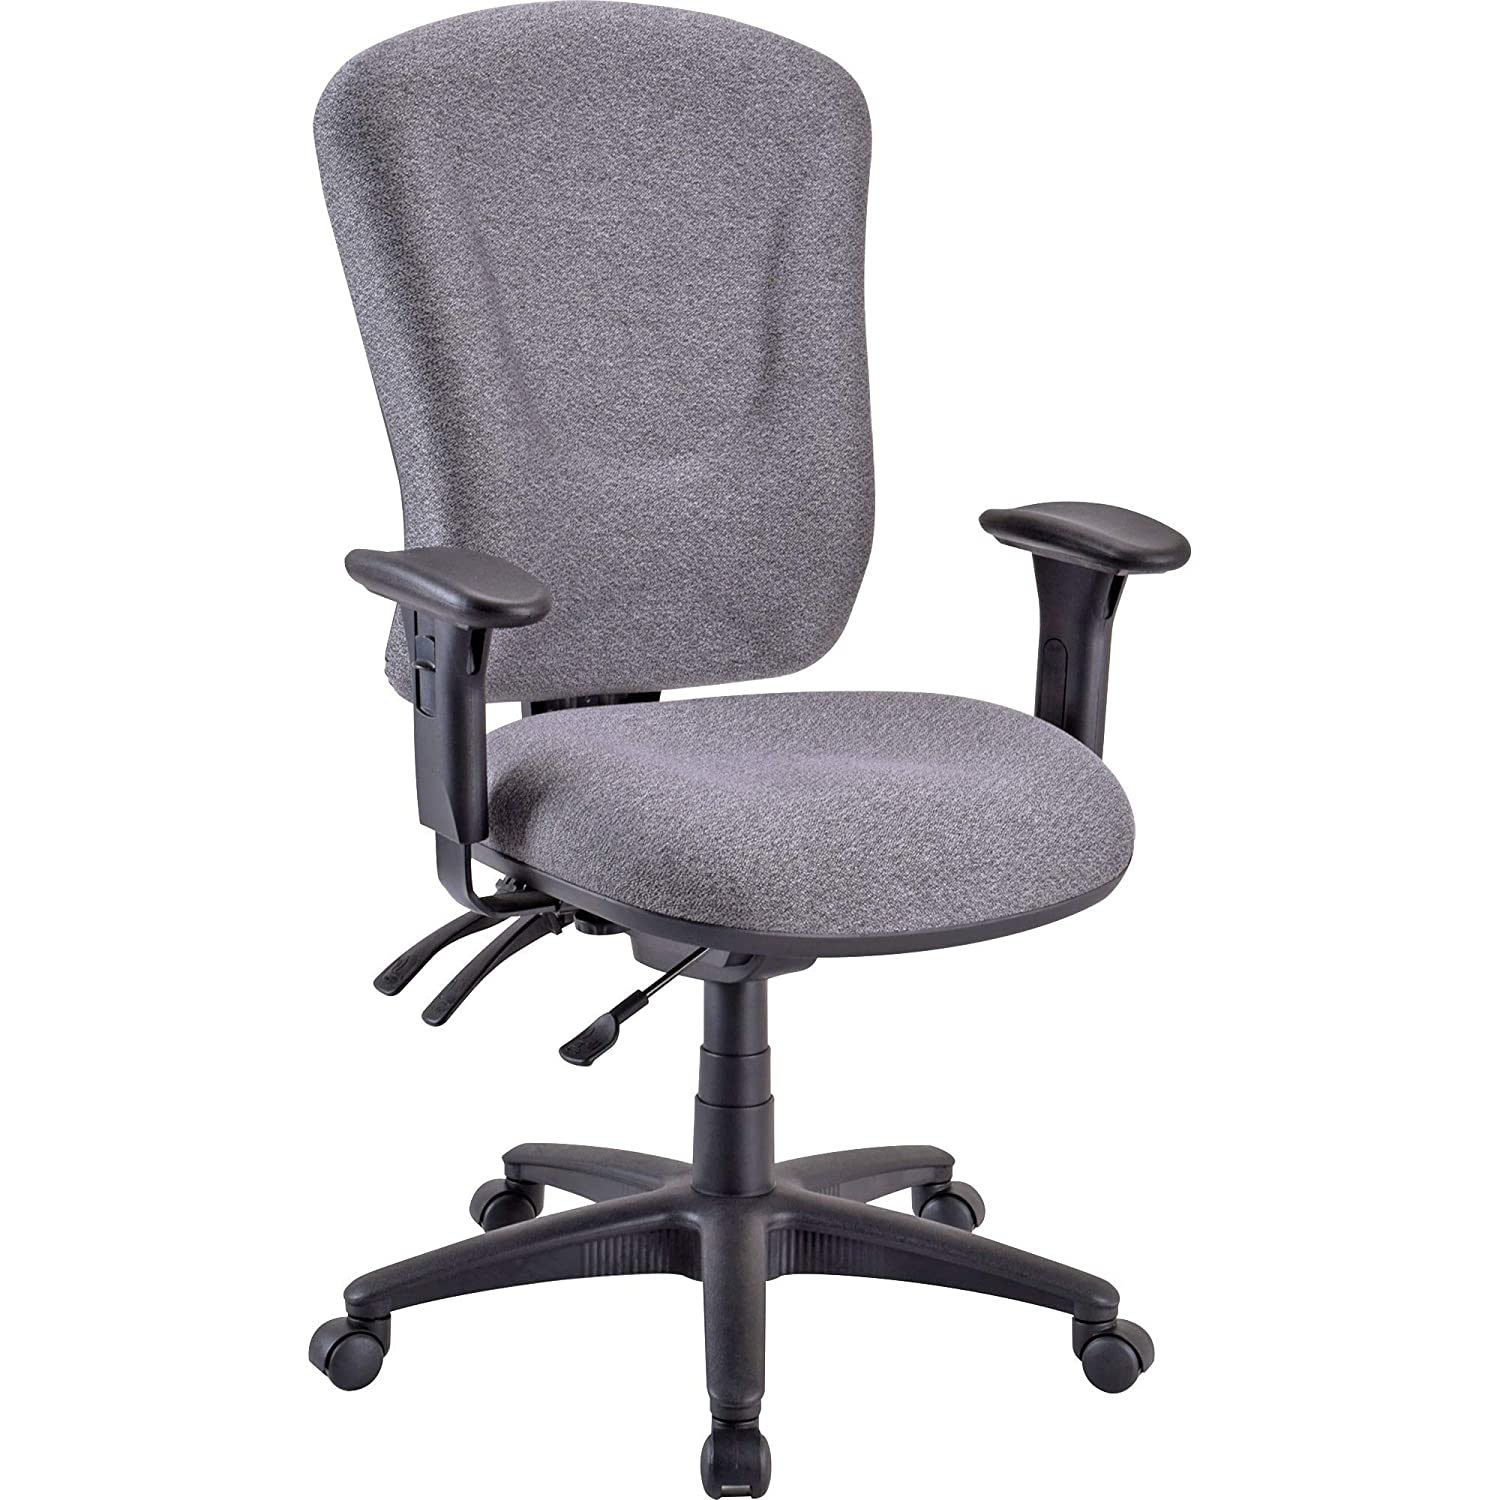 Lorell LLR66150 Accord Office Chair Gray